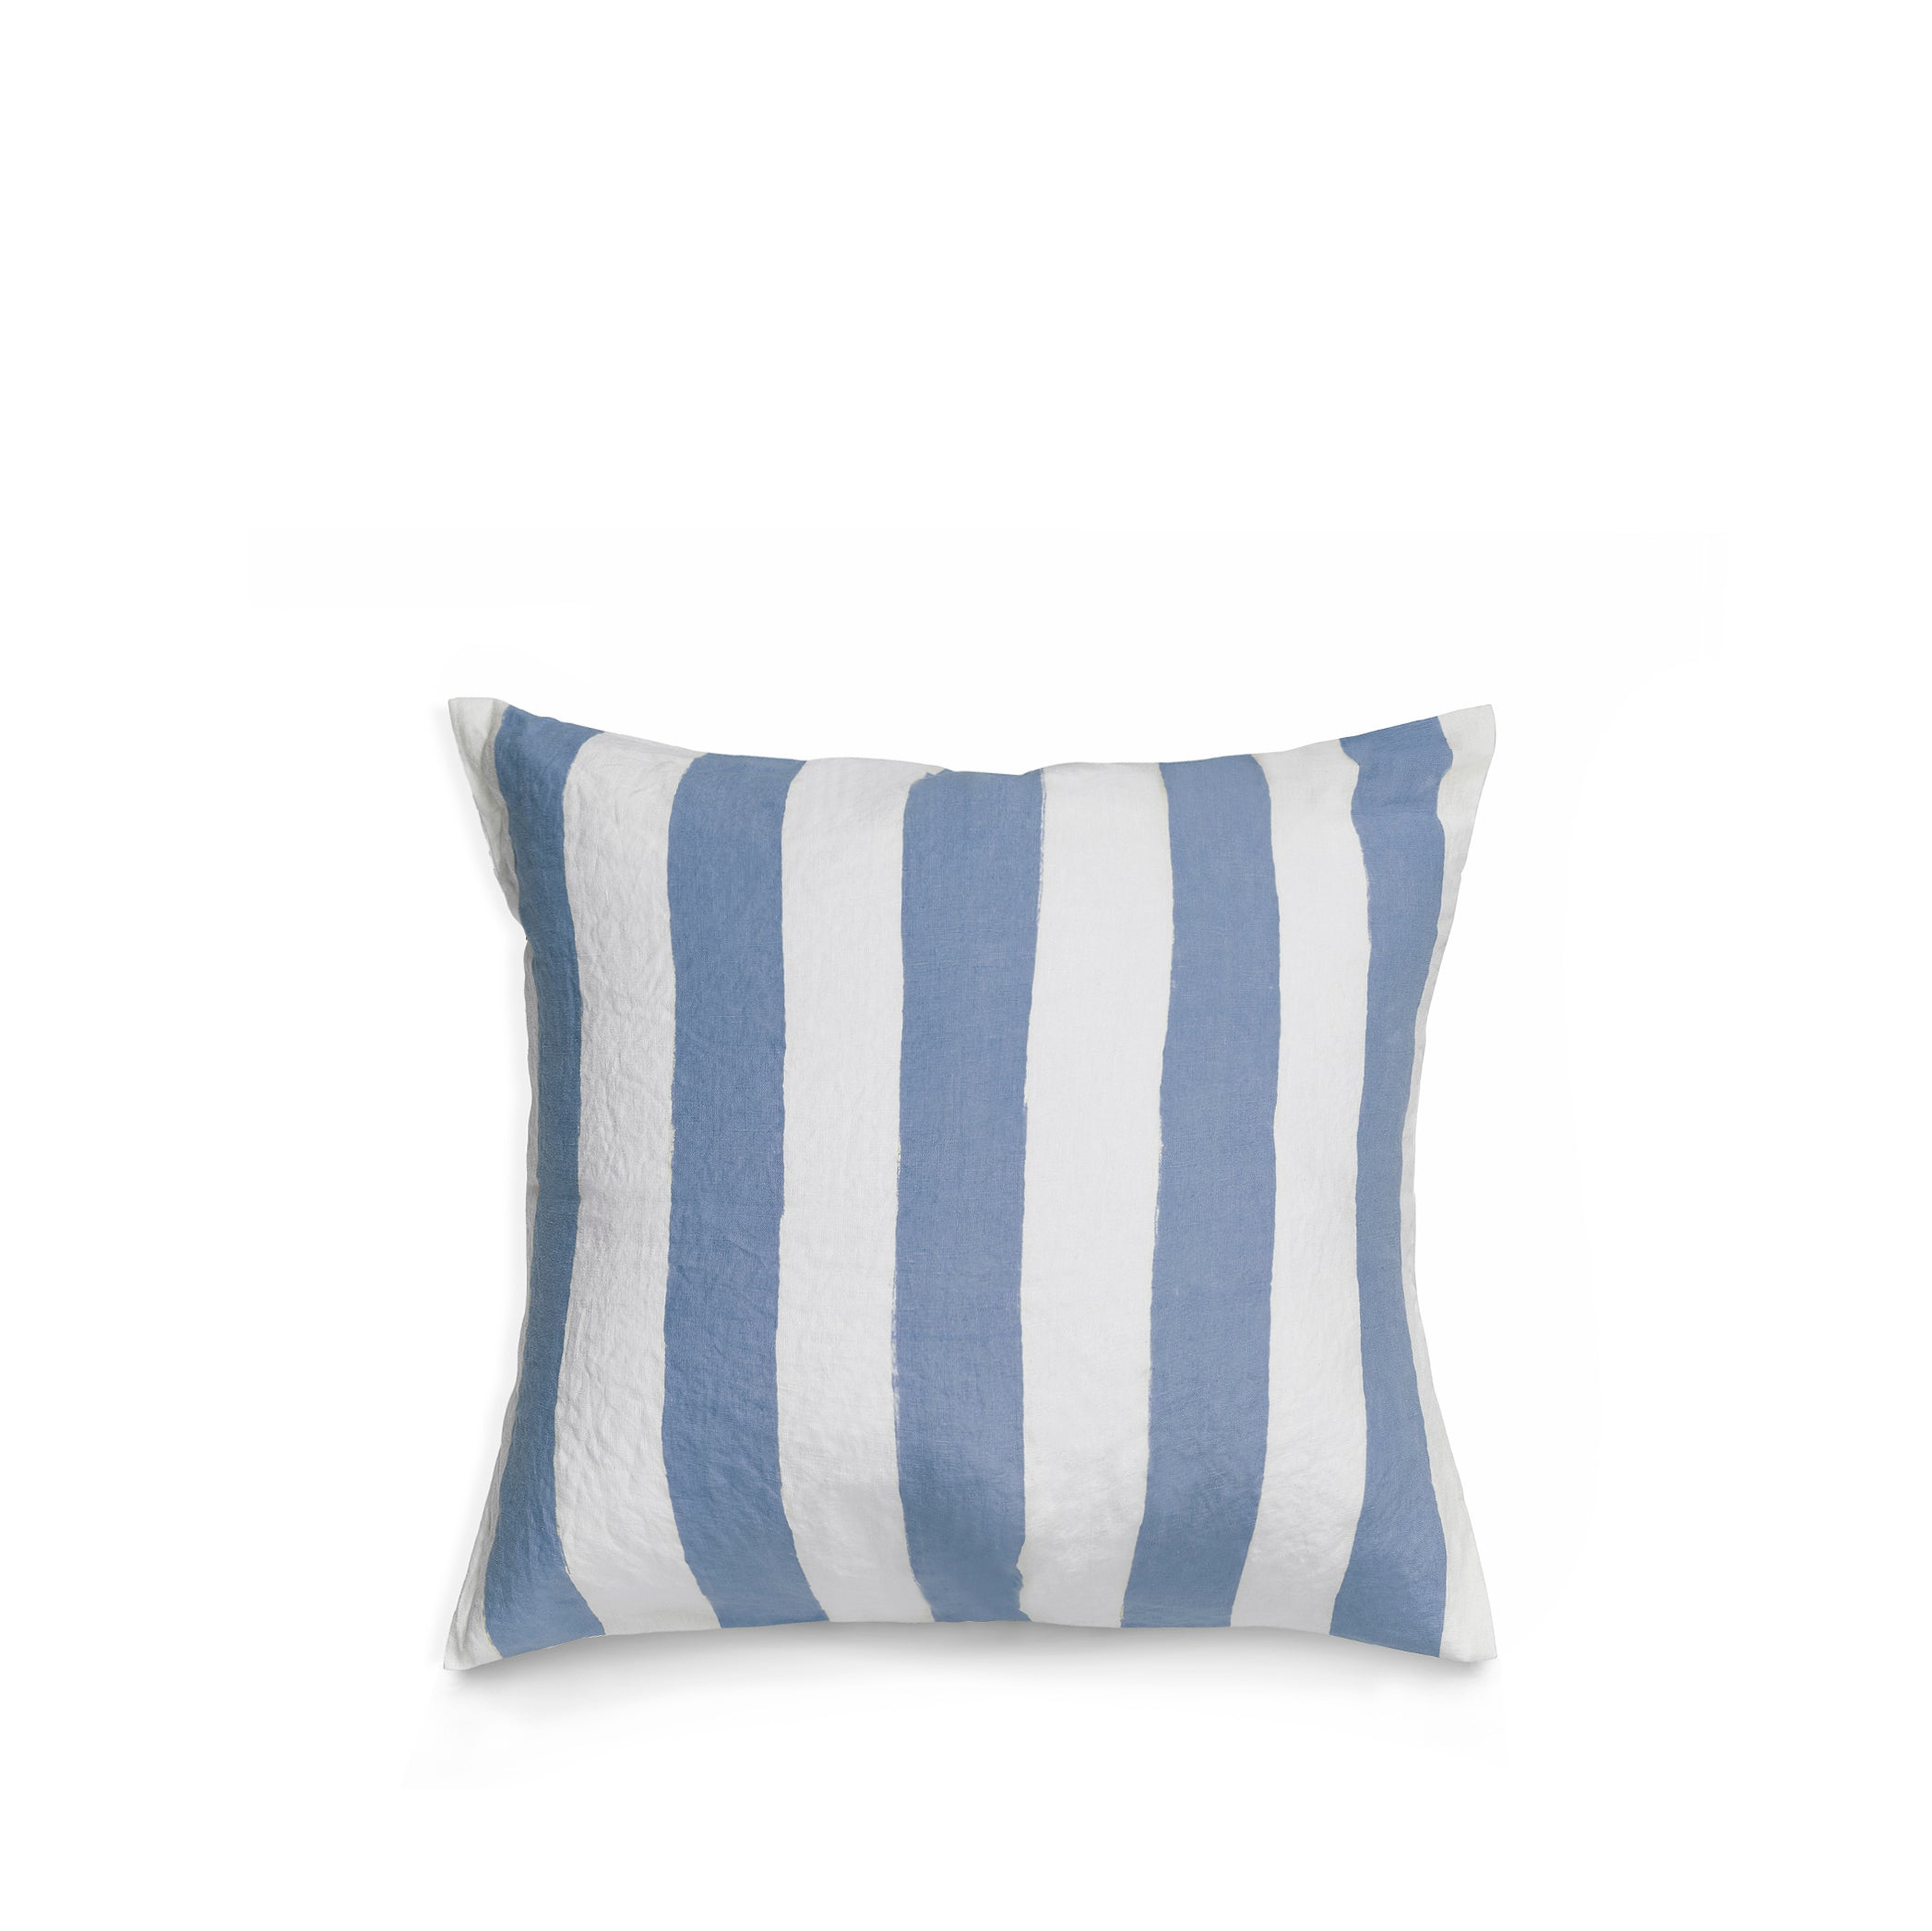 Hand Painted Stripe Linen Cushion in Pale Blue + White, 50cm x 50cm